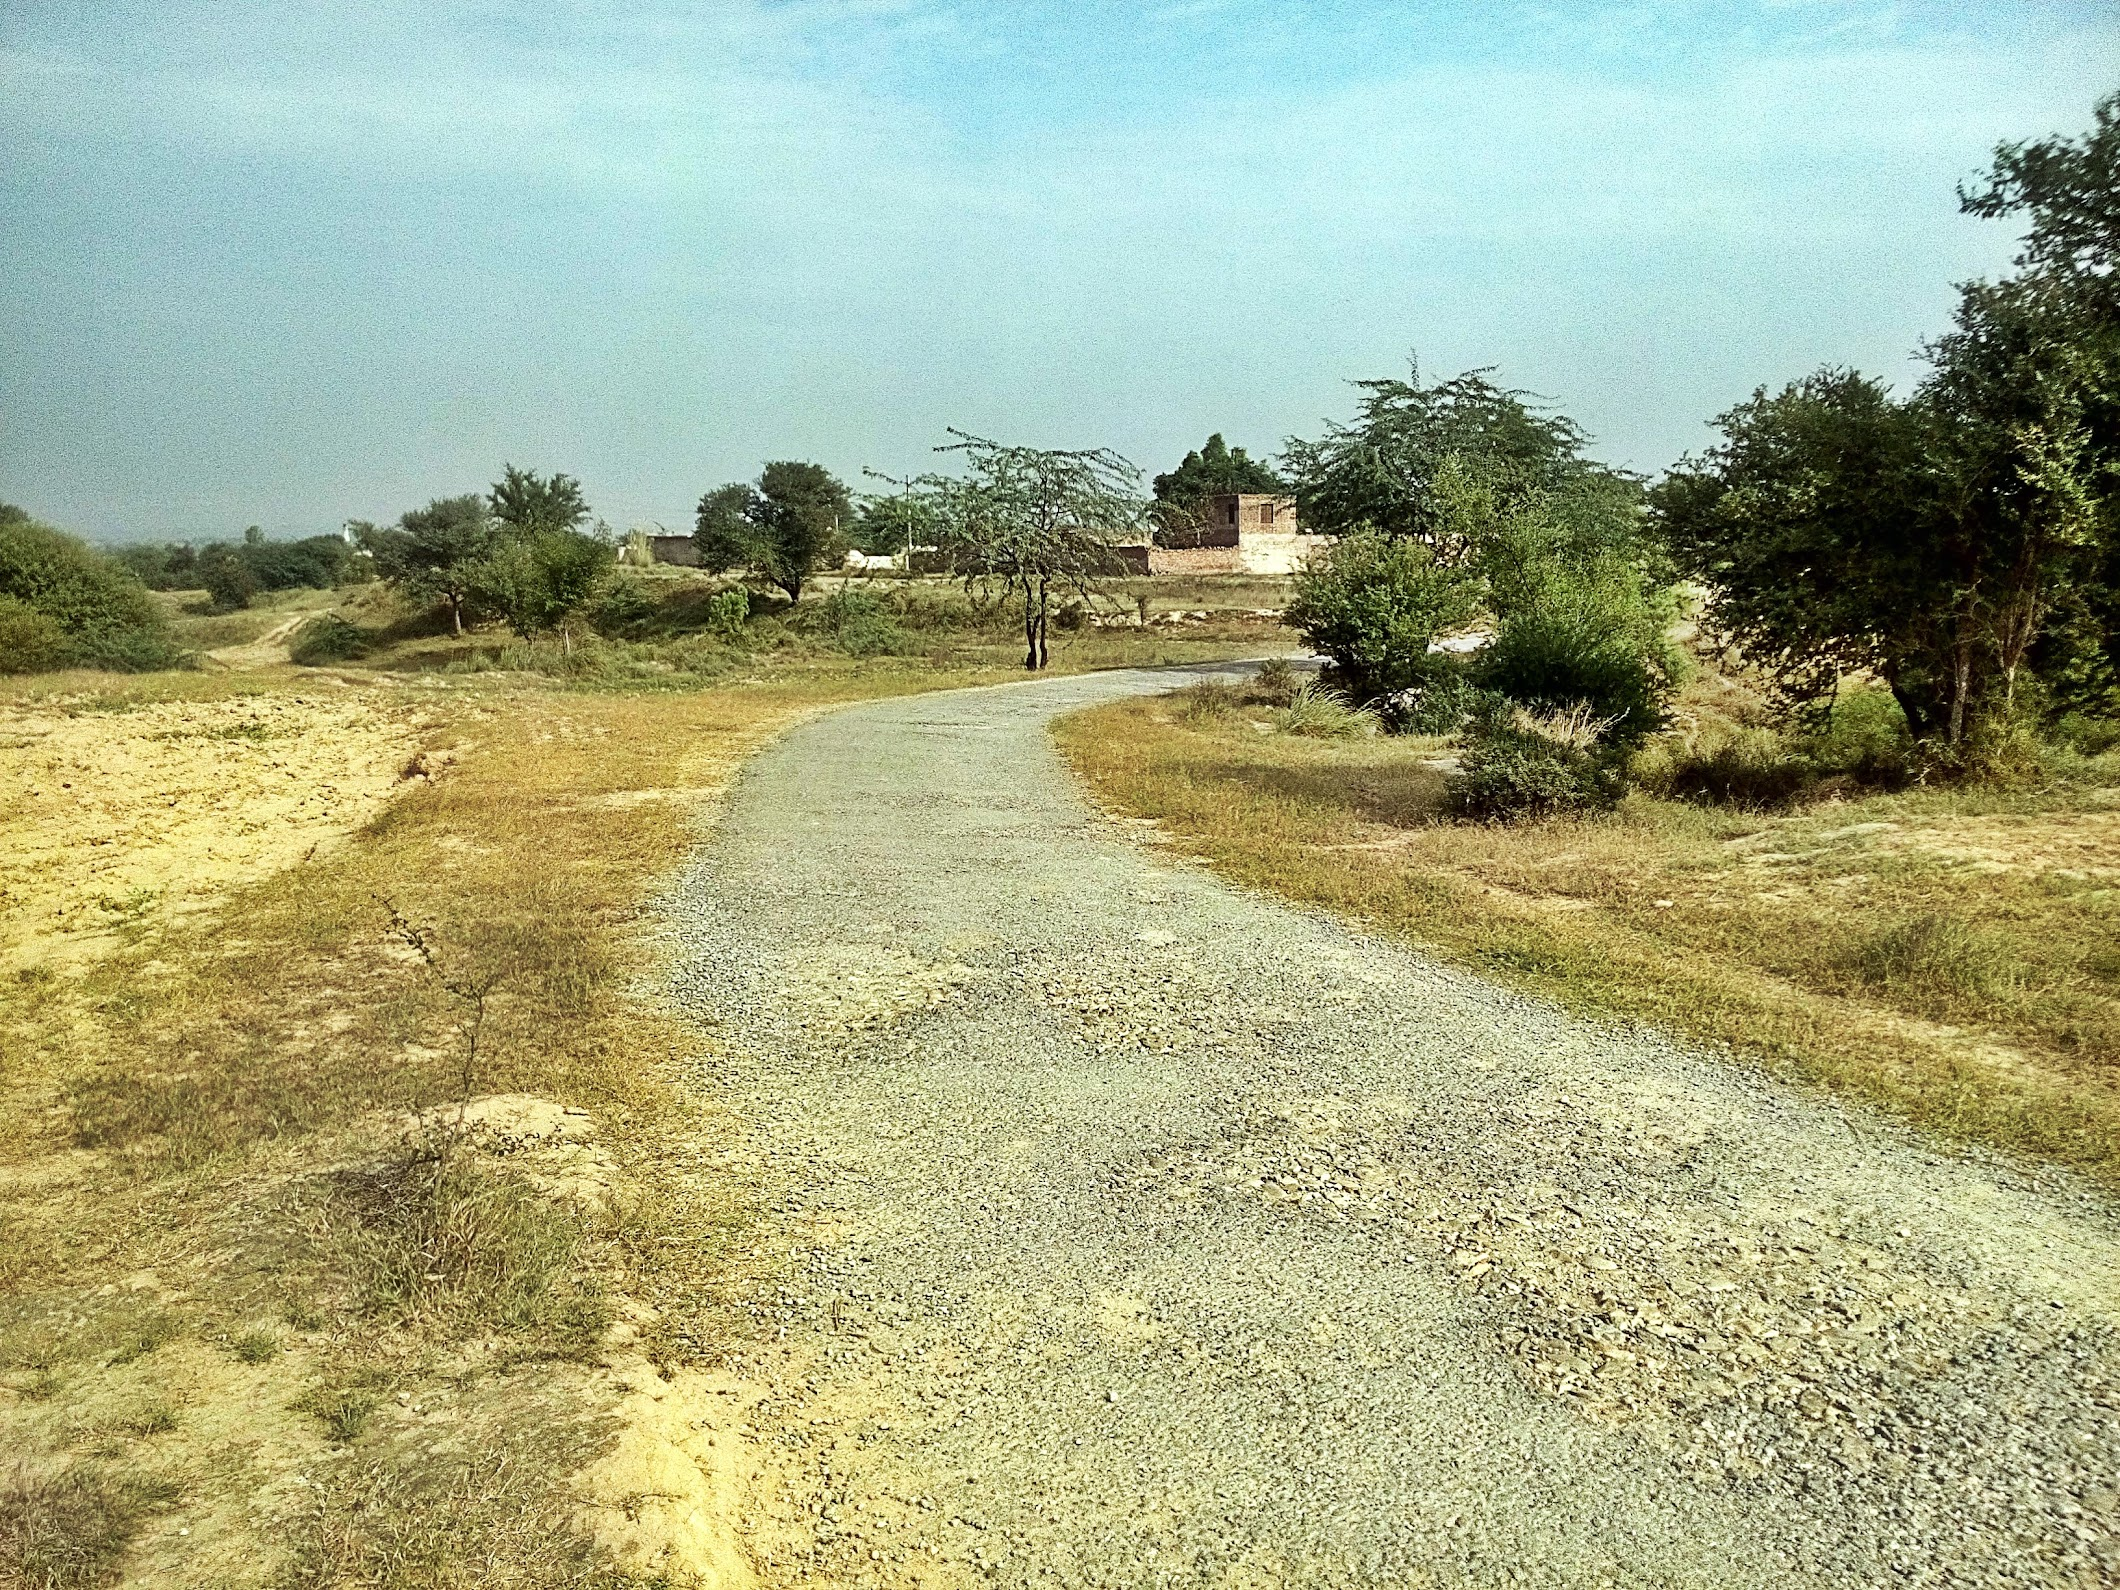 Road to Takhti Rajgan